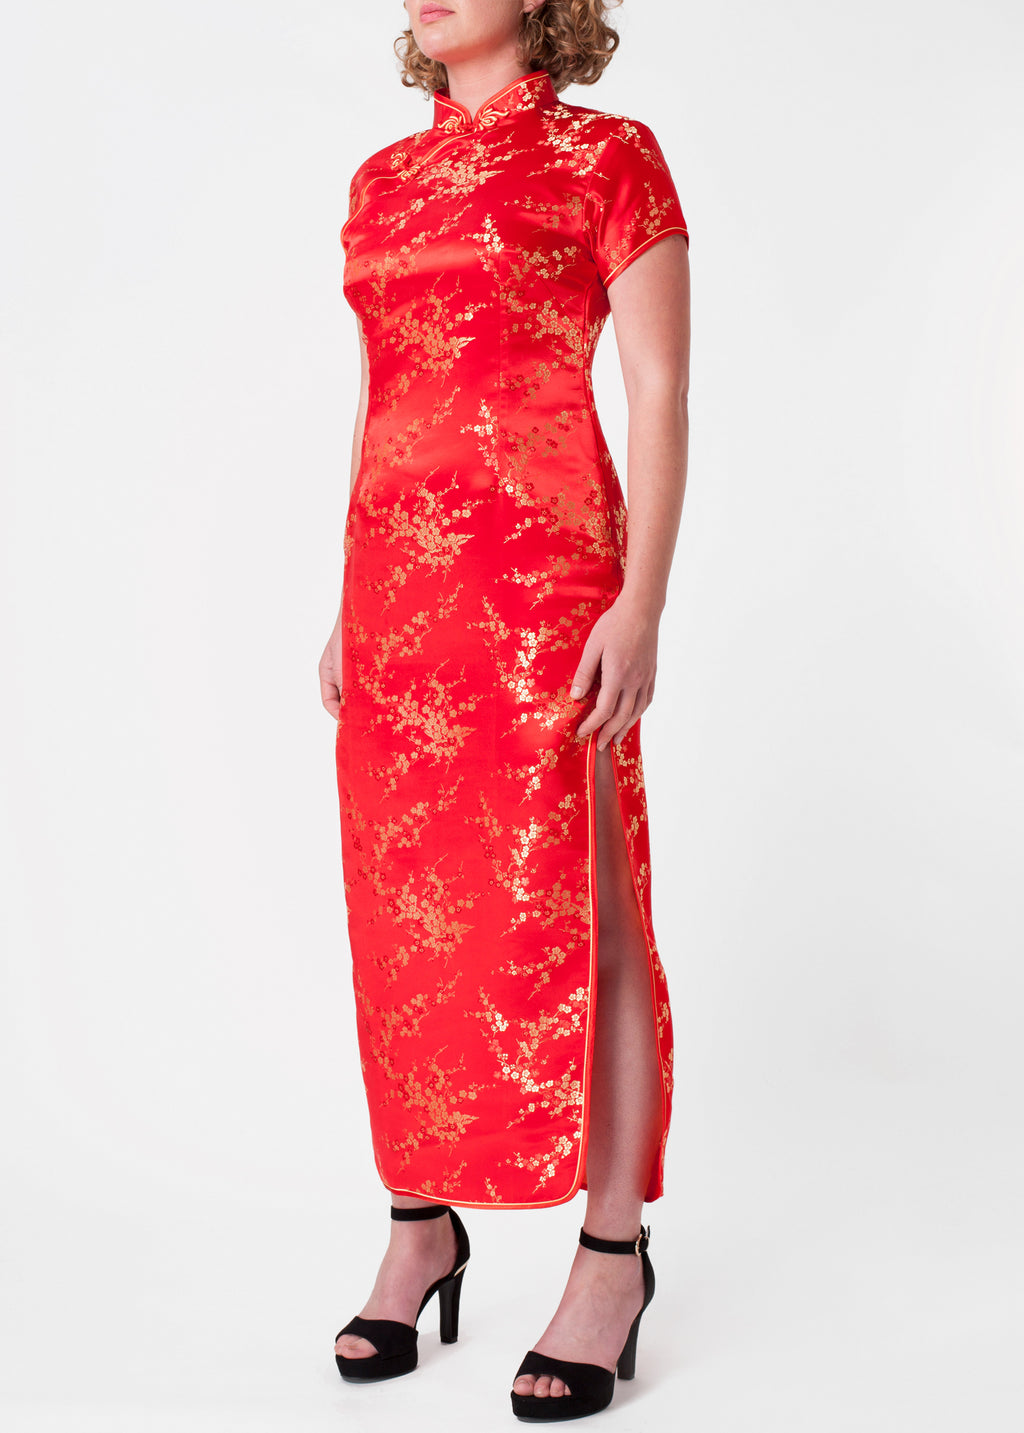 The Cheongsam or Qipao, is a feminine body-hugging Chinese style dress with distinctive features of mandarin collar, side splits and hand stitched flower and knot frog fastenings. Manufactured in authentic high quality silk/rayon brocade in a stunning red with gold cherry blossom design. Quick delivery from UK stock